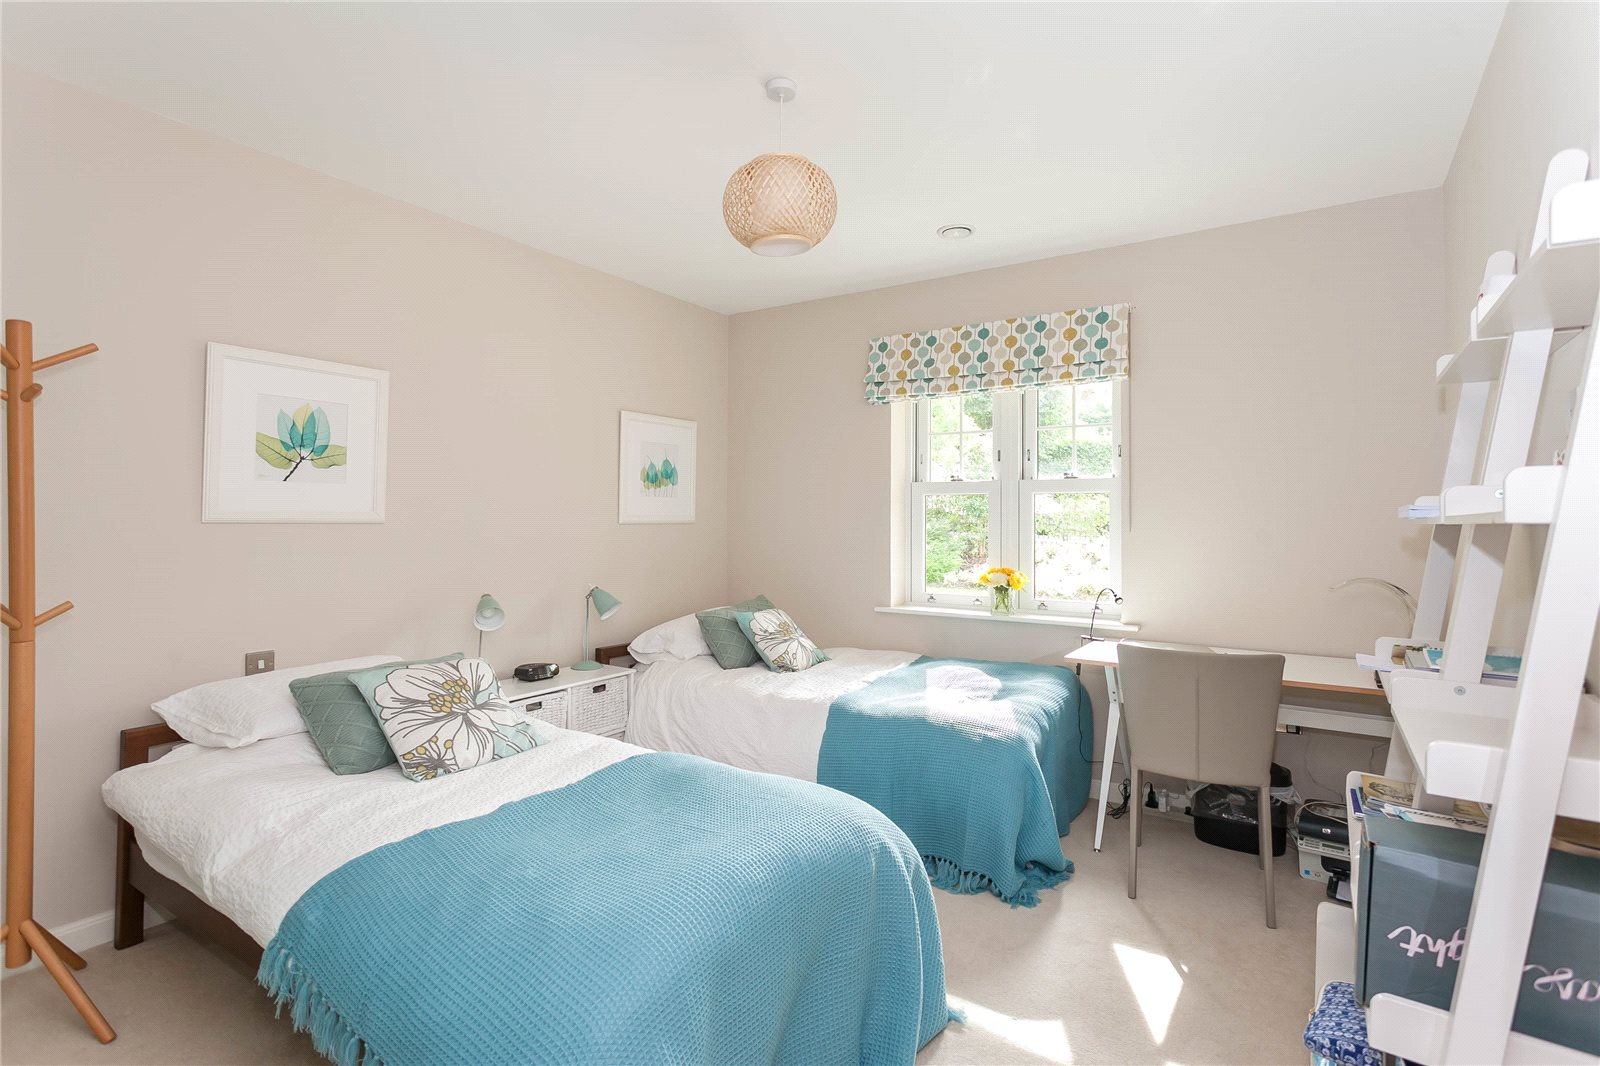 Additional photo for property listing at Baytrees, 20 South Park View, Gerrards Cross, Buckinghamshire, SL9 Gerrards Cross, Angleterre